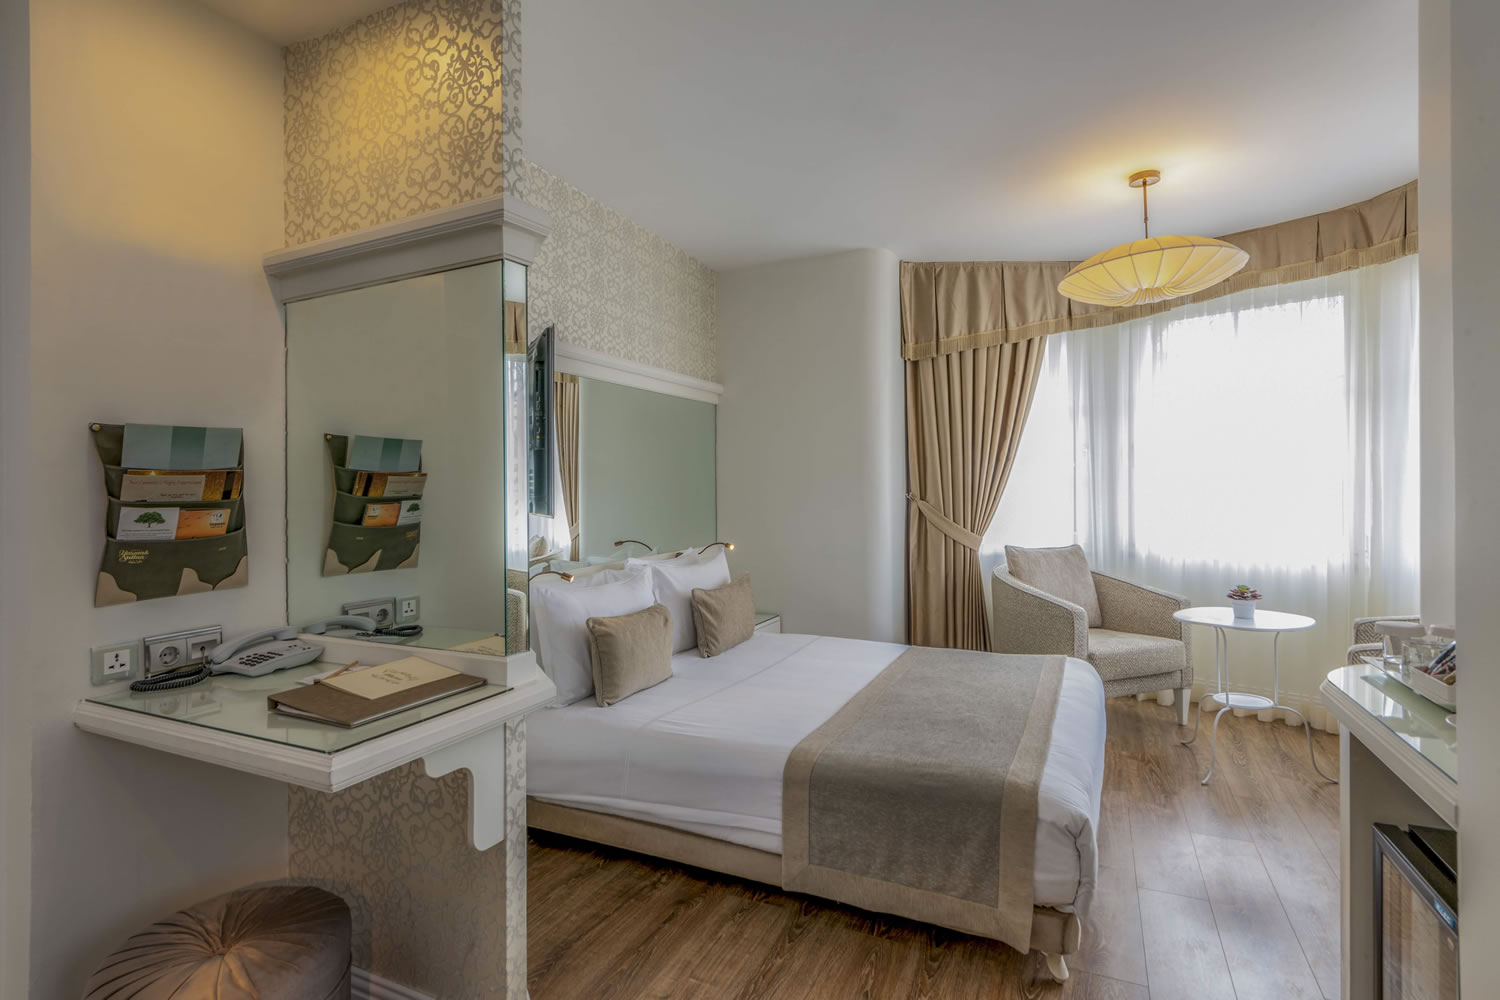 HOTEL YASMAK SULTAN - room photo 4